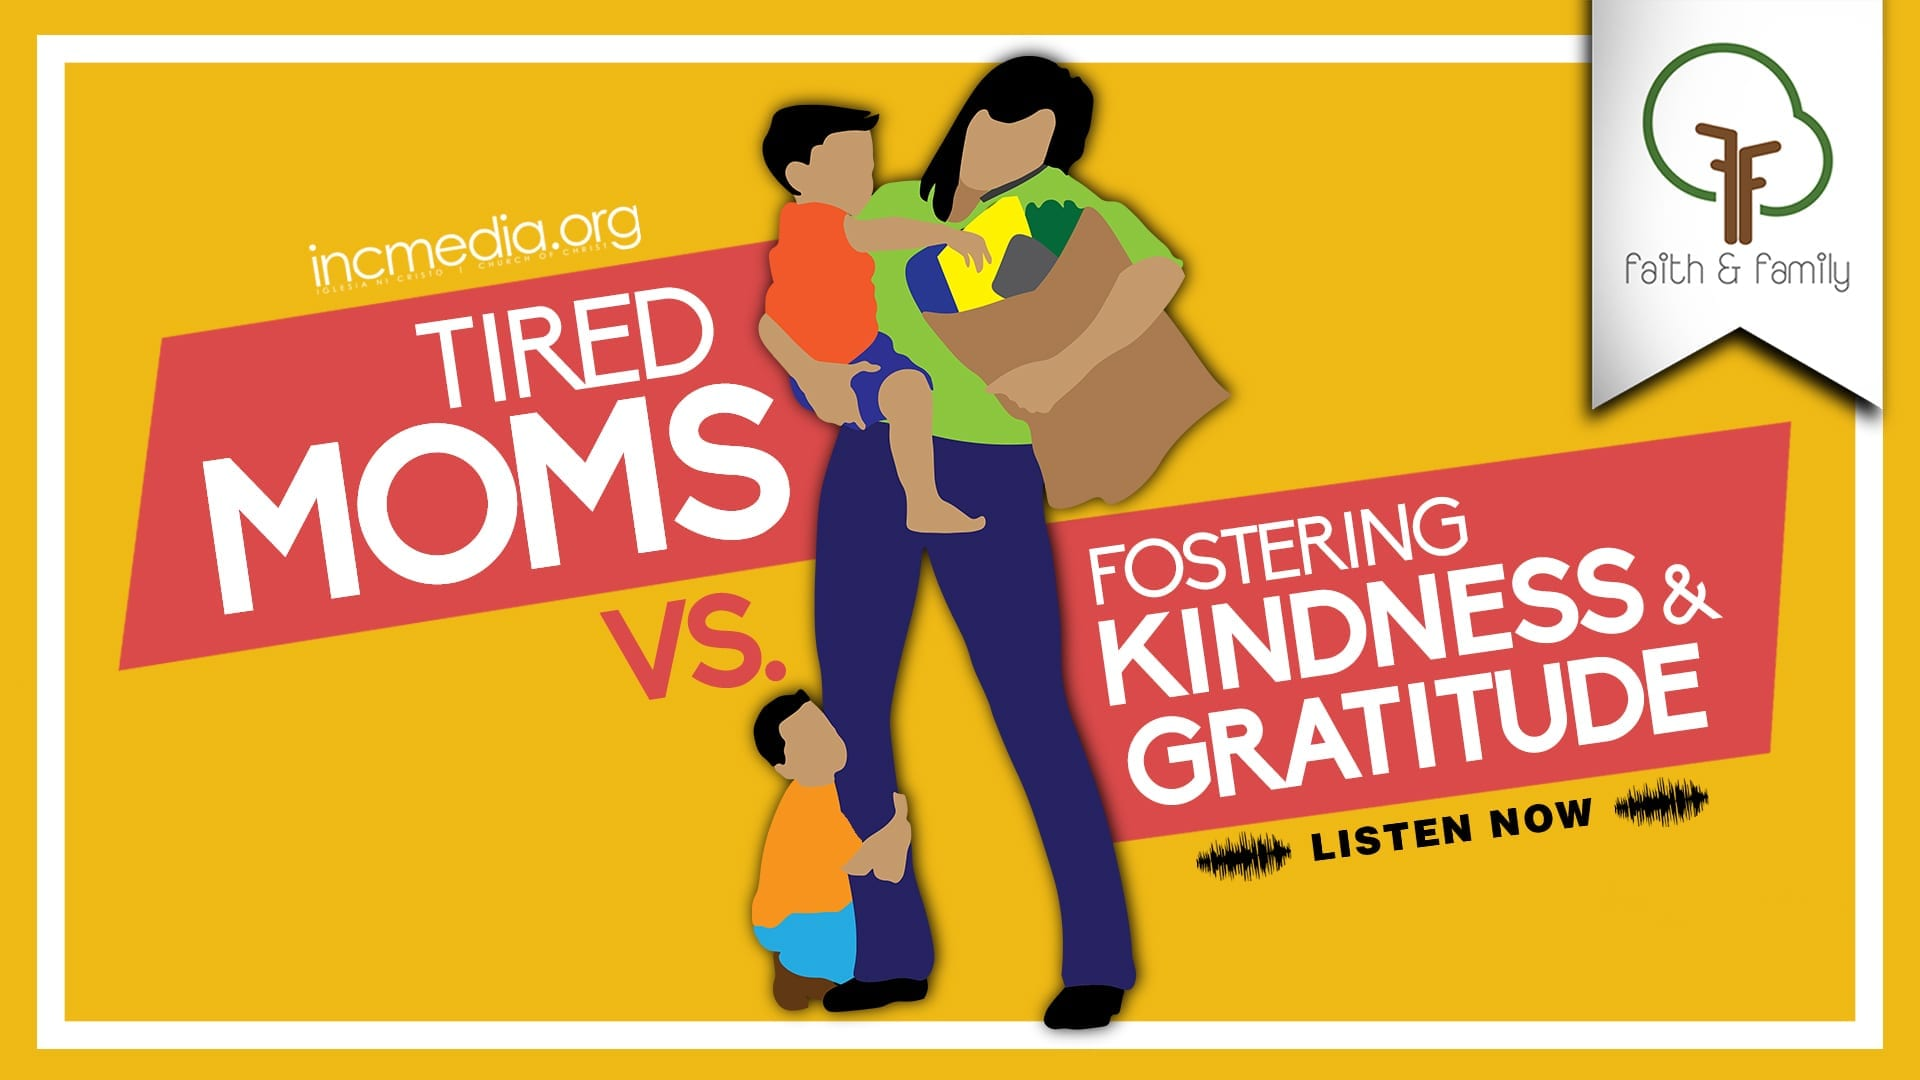 Tired Moms vs. Fostering Kindness and Gratitude